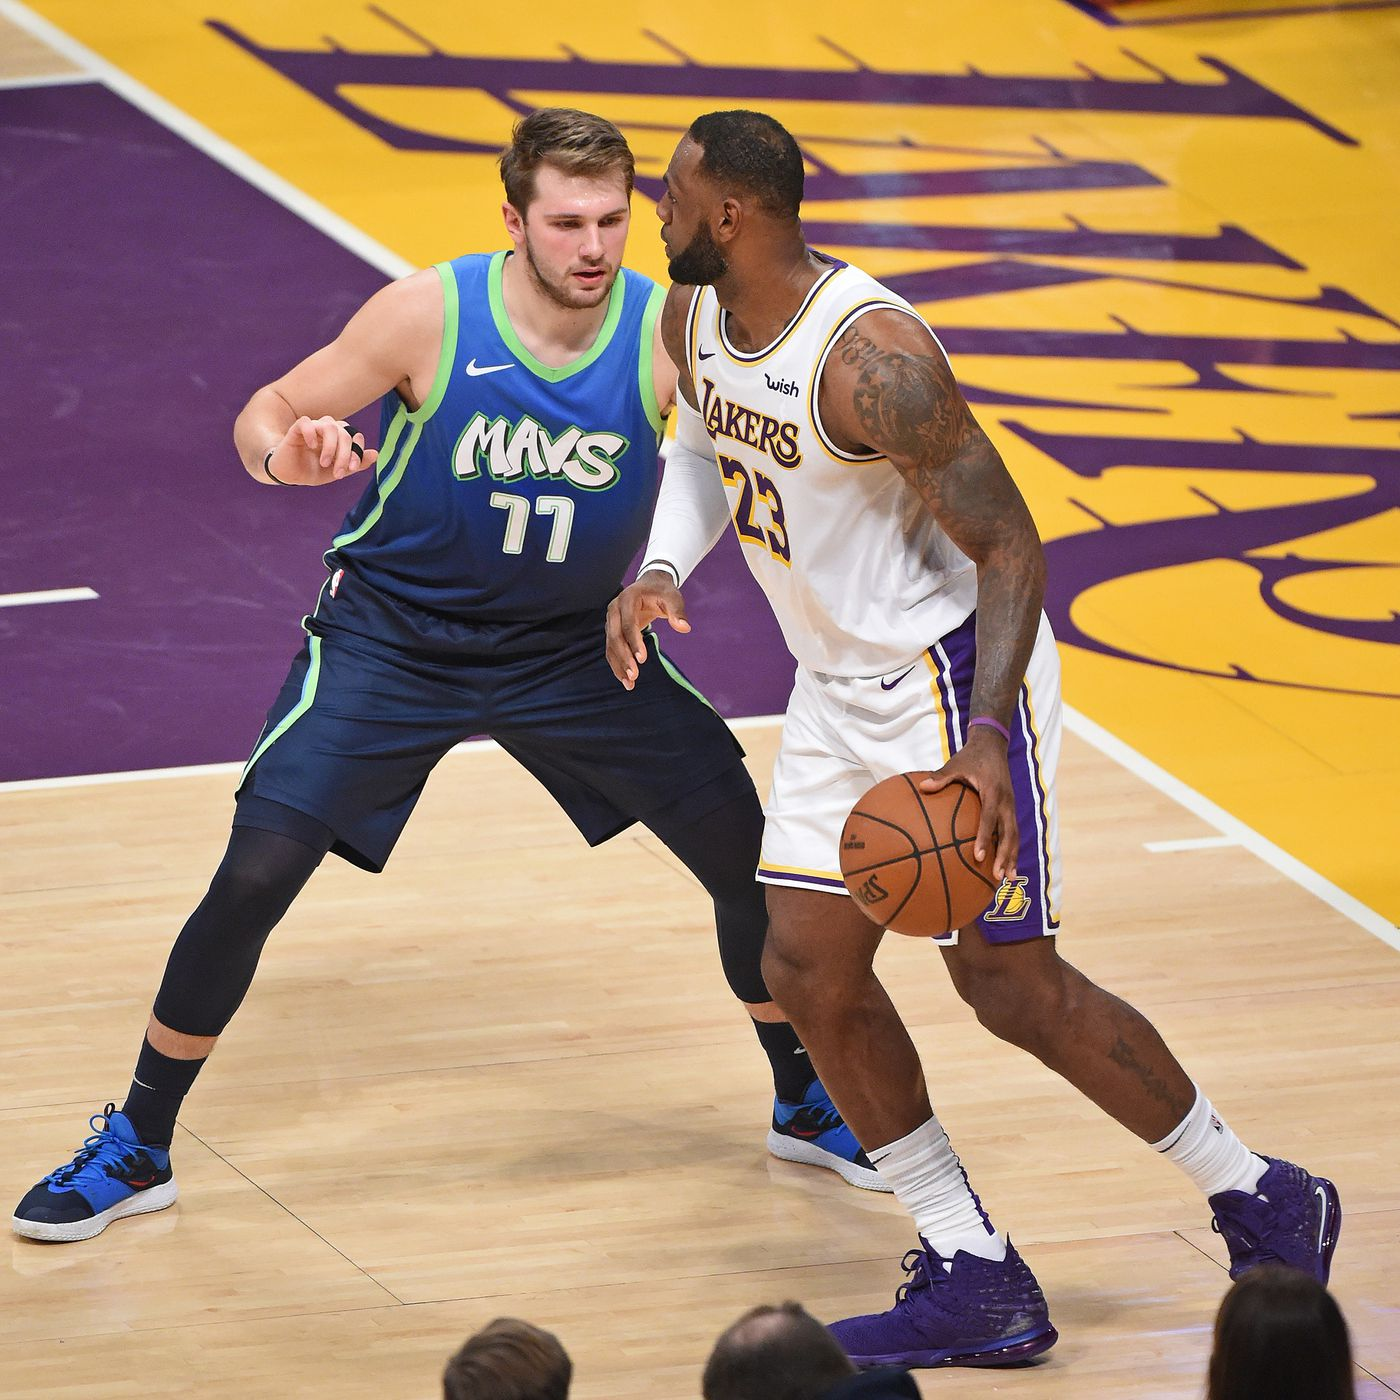 Lakers Vs Mavericks Preview Game Thread Starting Time And